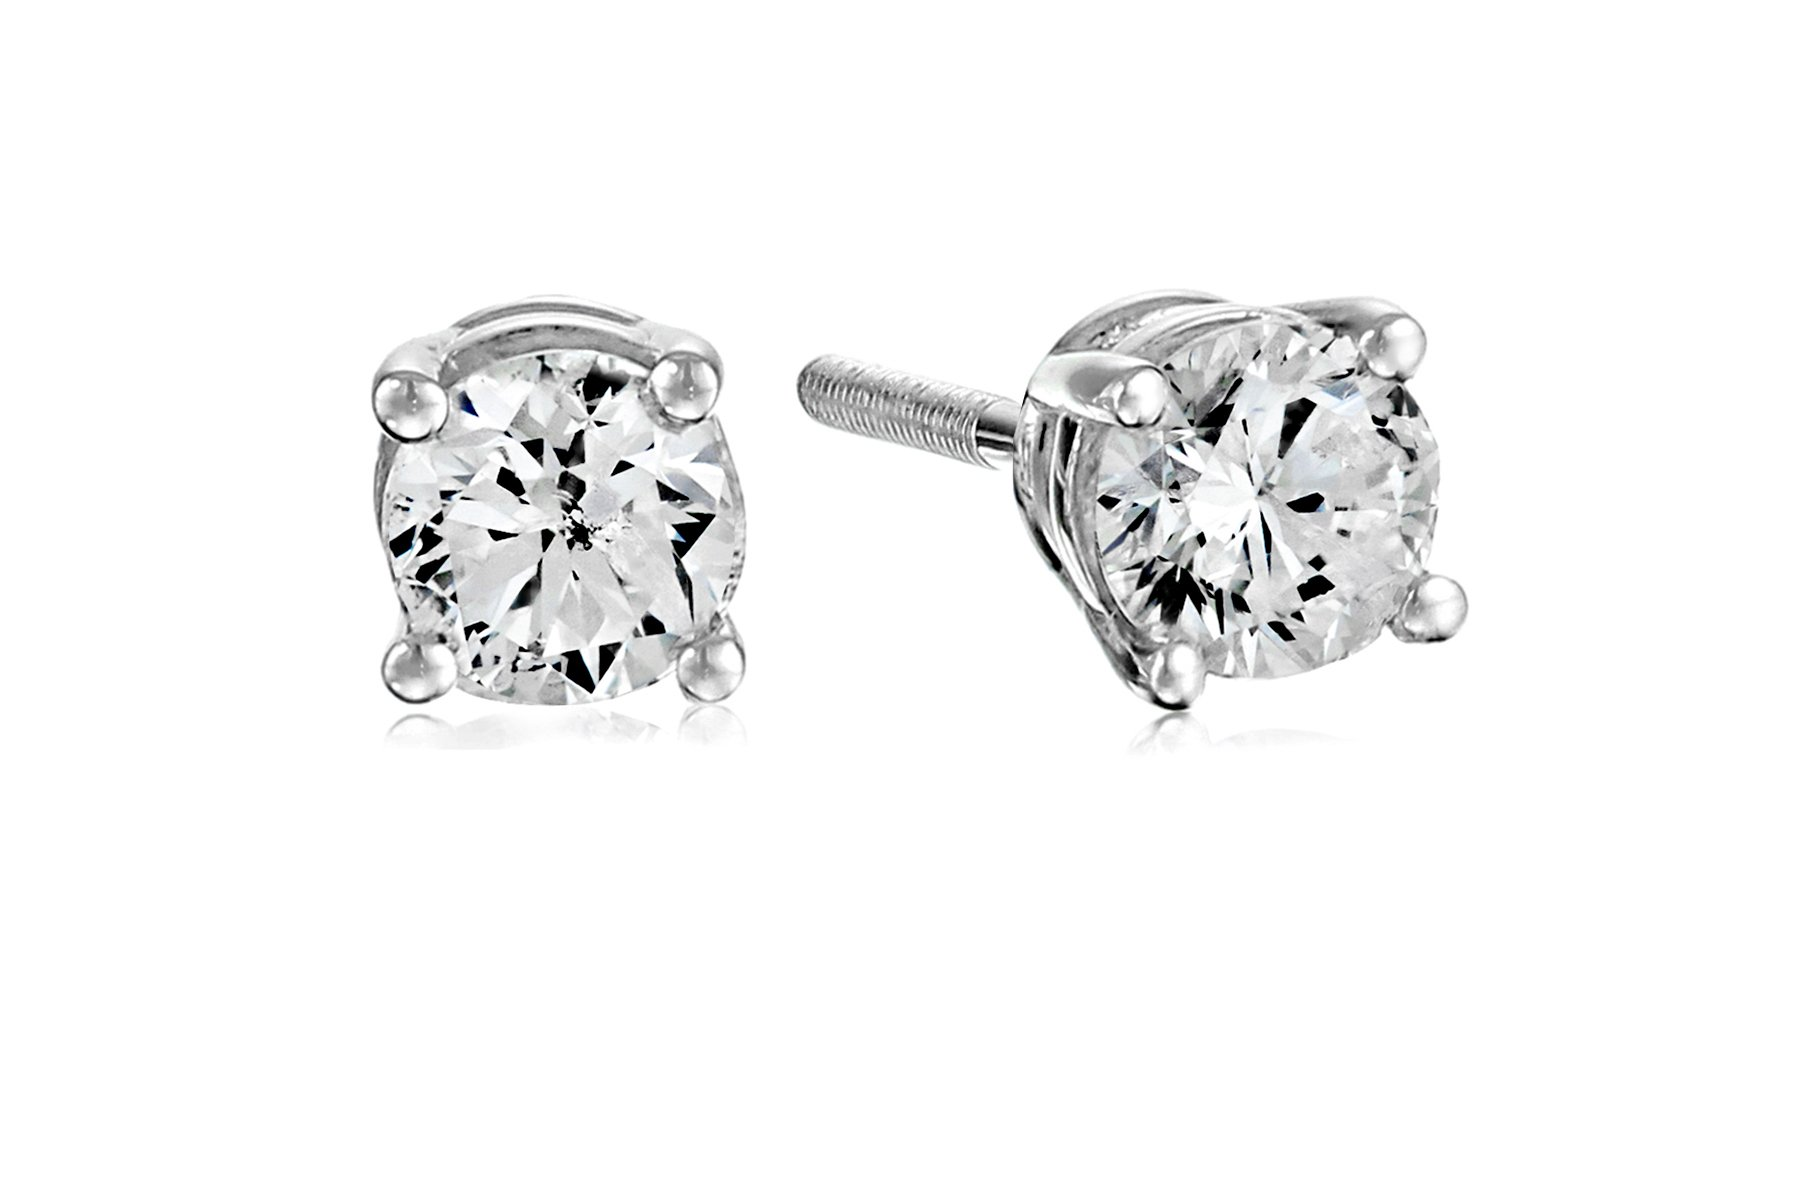 Certified 14k White Gold Diamond with Screw Back and Post Stud Earrings (1/2cttw, J-K Color, I1-I2 Clarity)